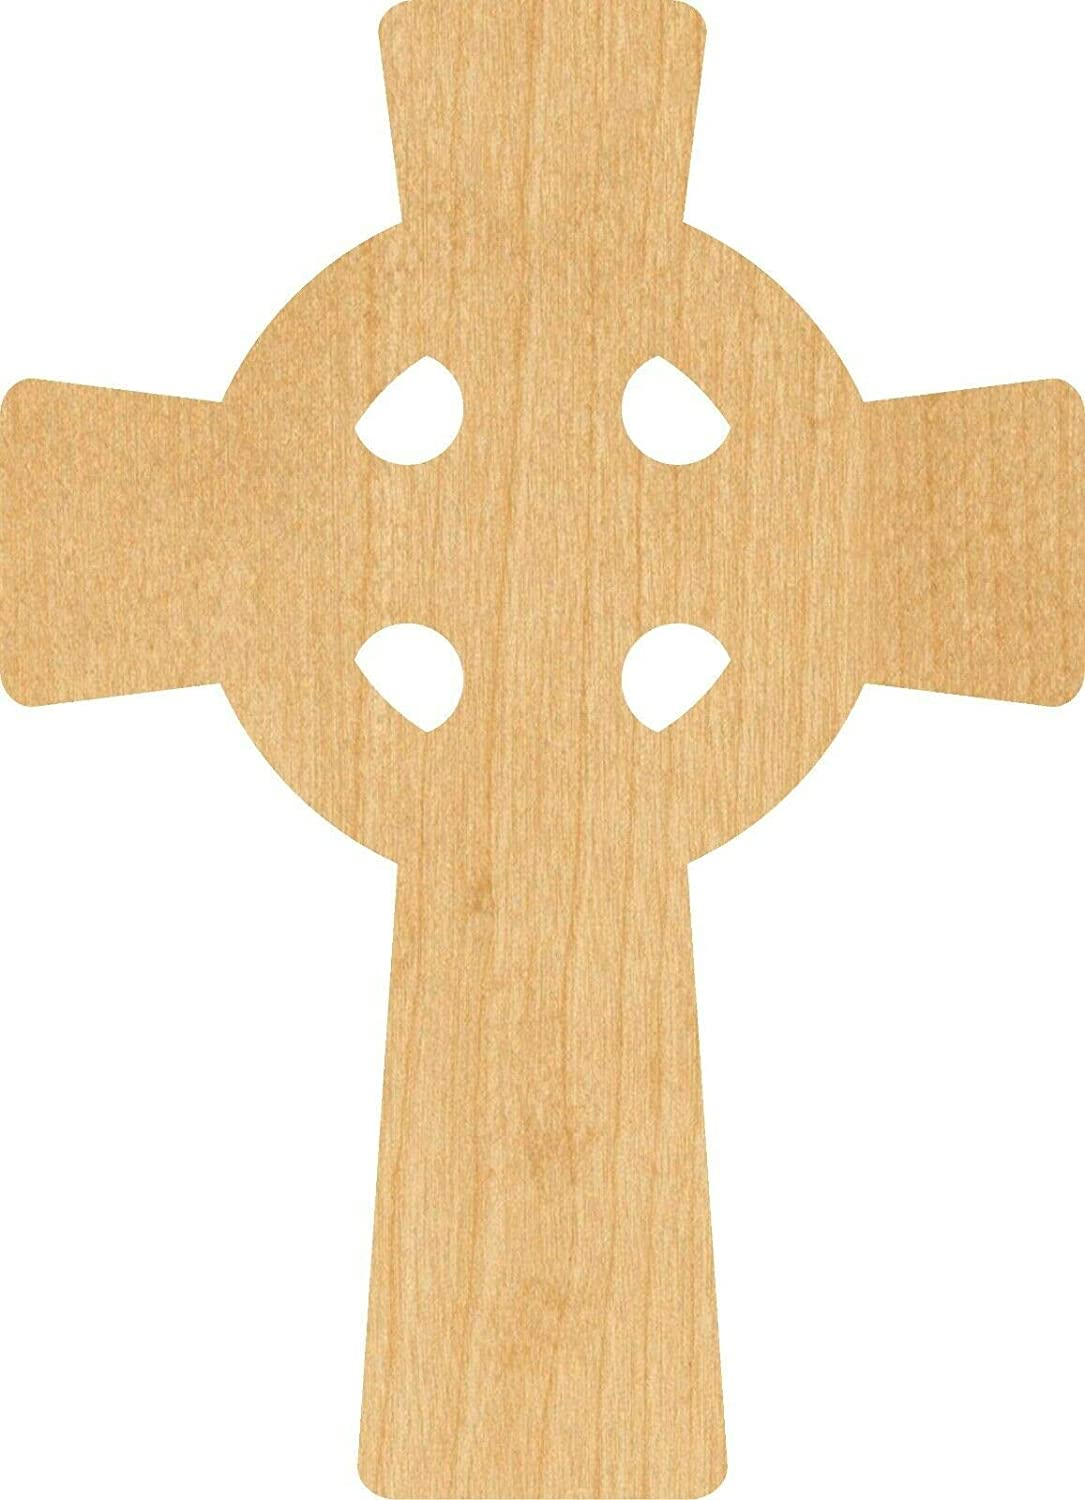 Celtic Cross Laser Cut Out Wood Shape Craft rasaca - Woodcraft (Thickness: 1/8 inch - Size: 6 inch)